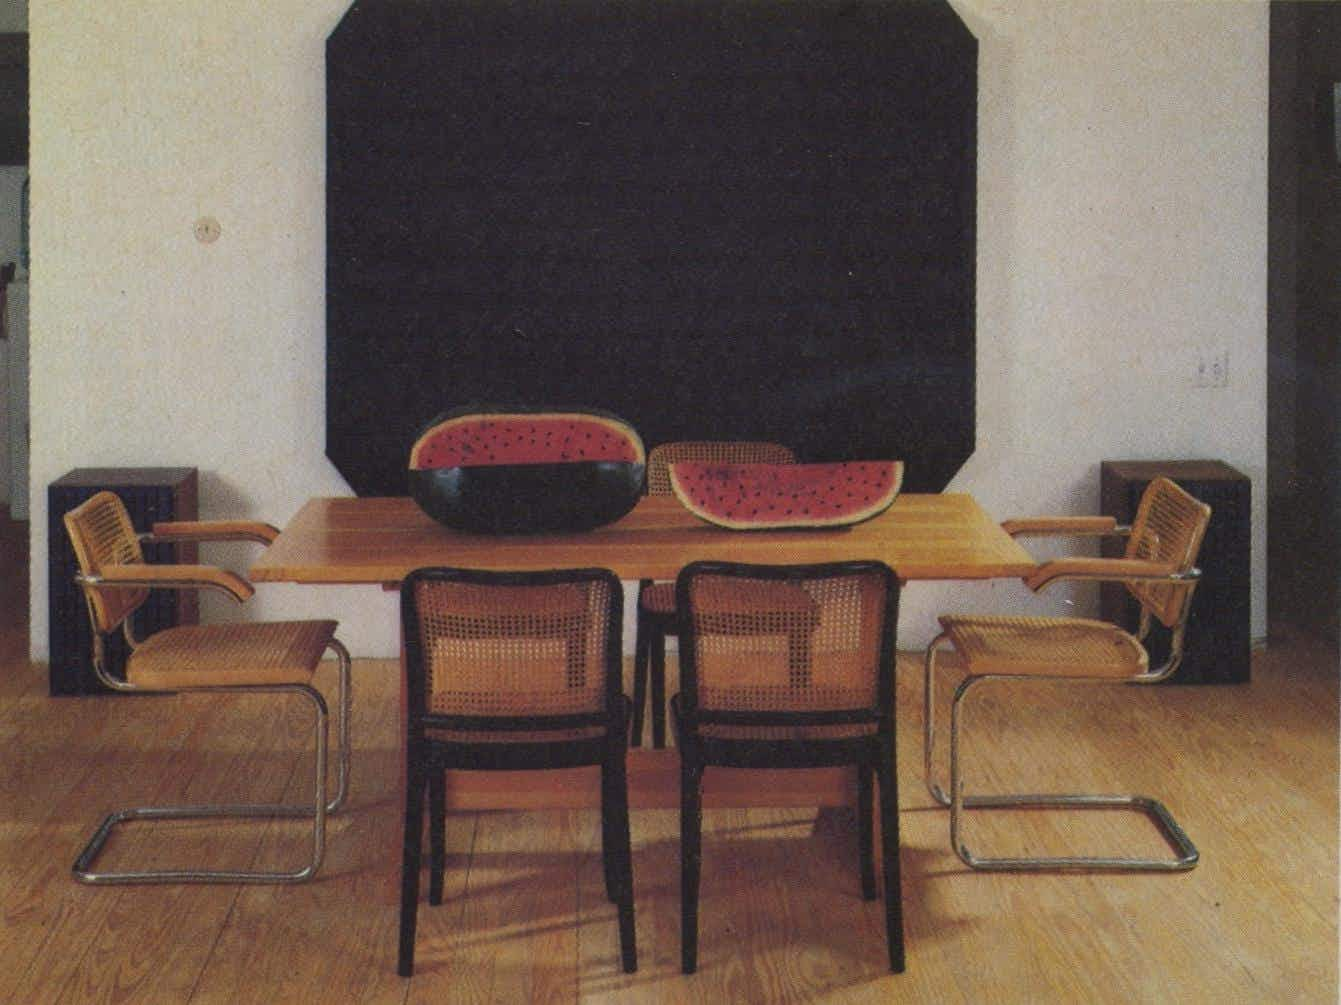 Ralph Humphrey's heavily textured black oil provides a dramatic background for the colorful watermelon centerpiece carved from cottonwood and painted by Felipe Archuleta. Around the table are original Cesca (light) and Thonet (black) chairs.